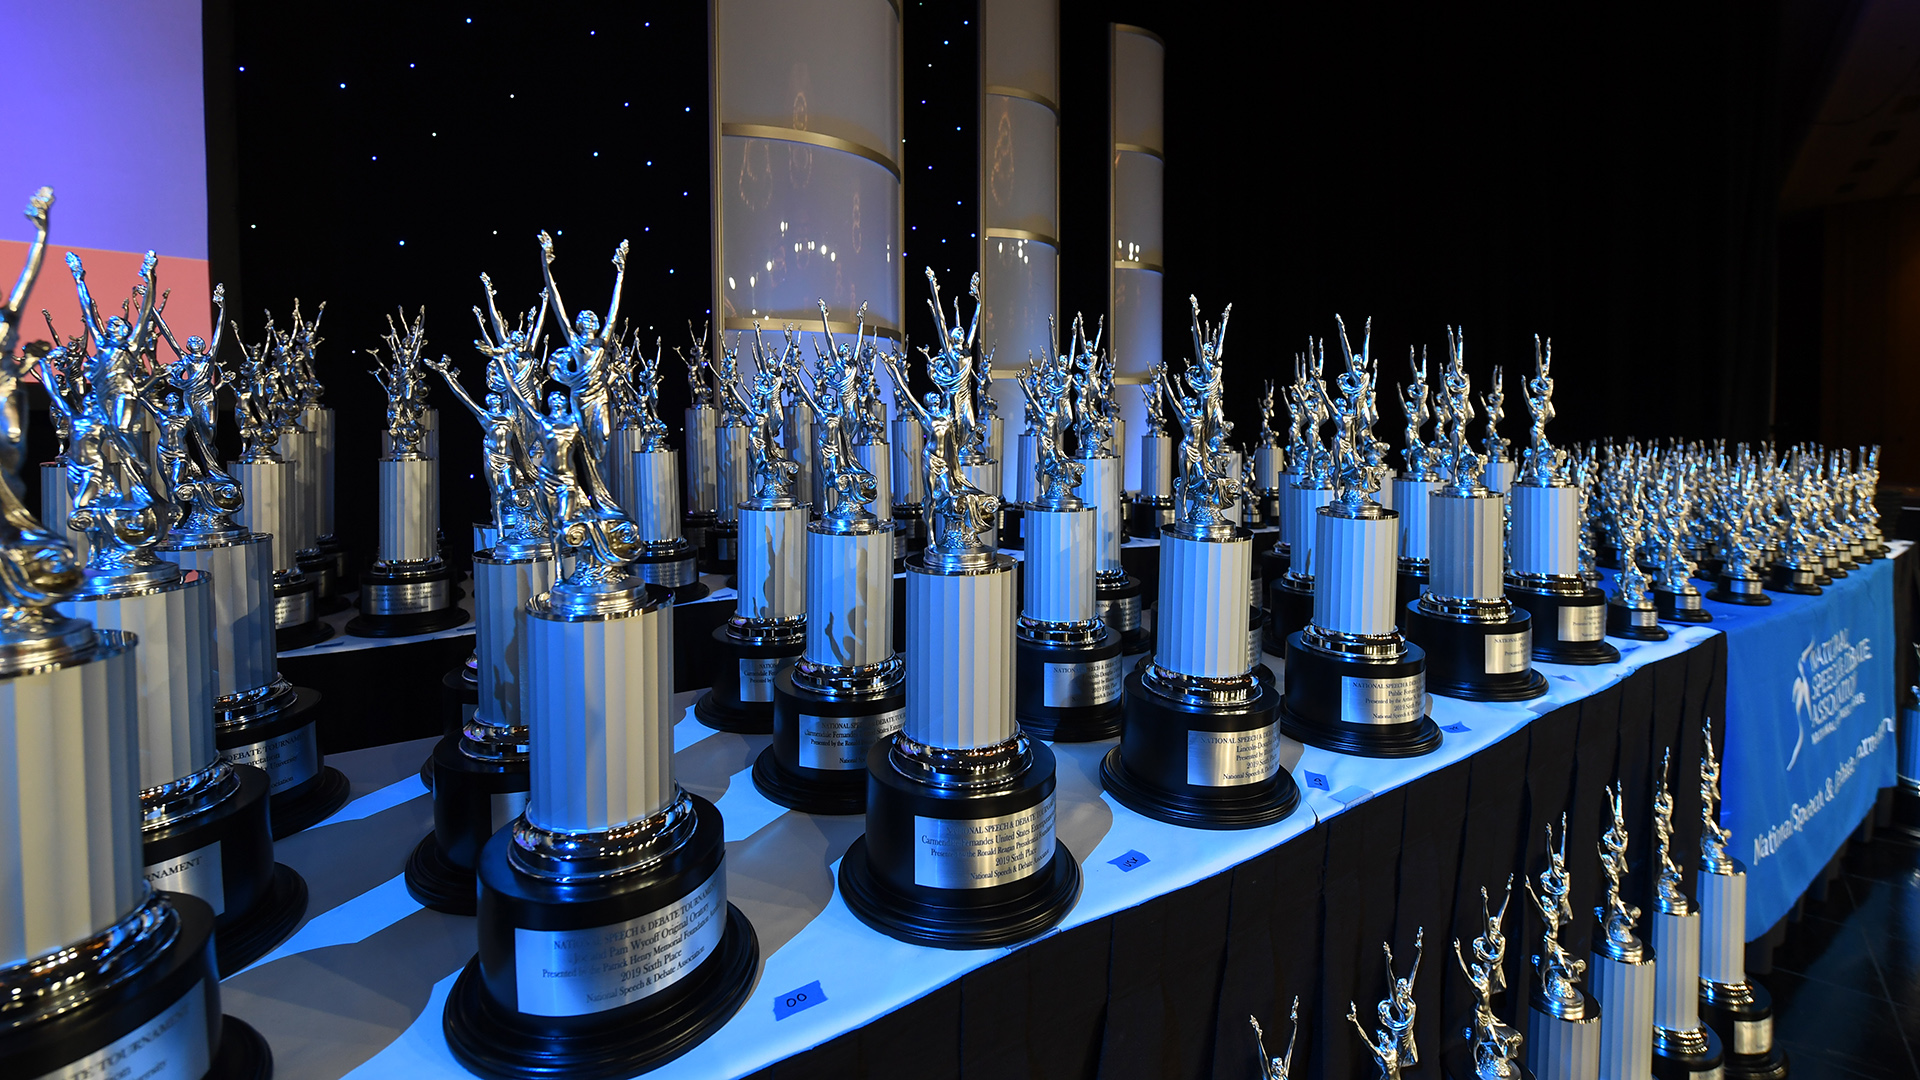 NSDA Trophies Background